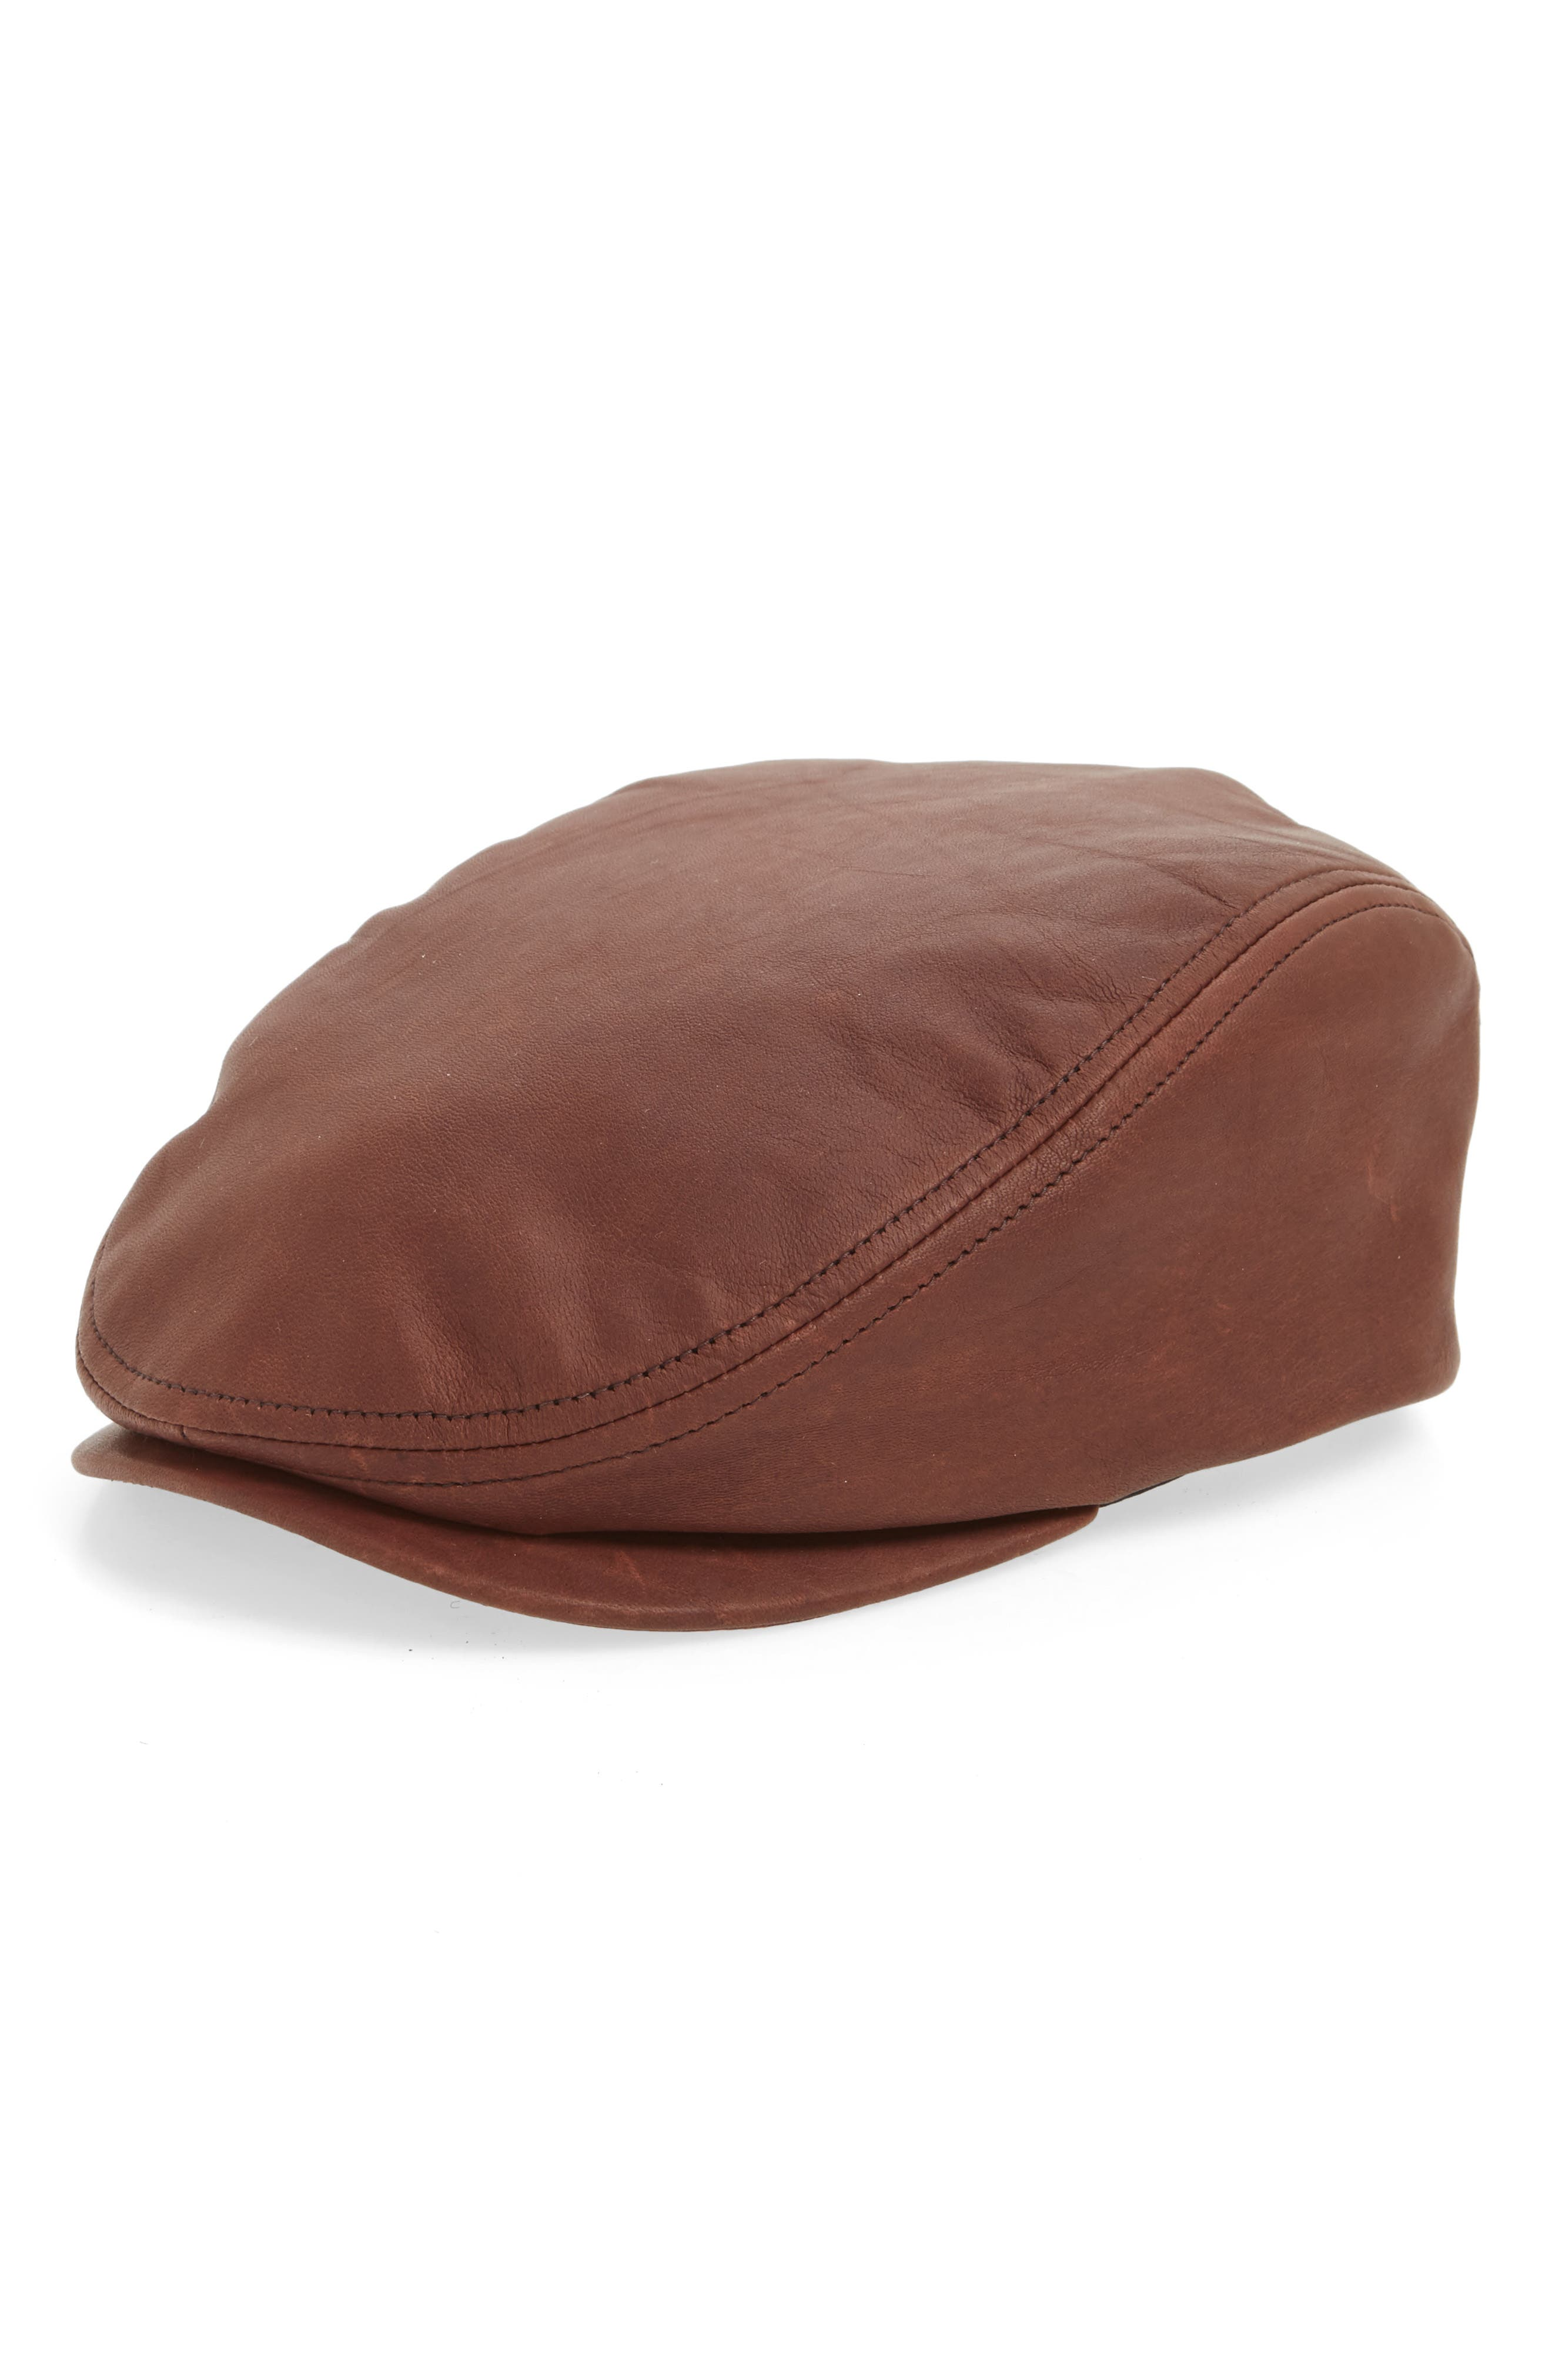 Leather Driving Cap,                             Main thumbnail 1, color,                             MED. BROWN